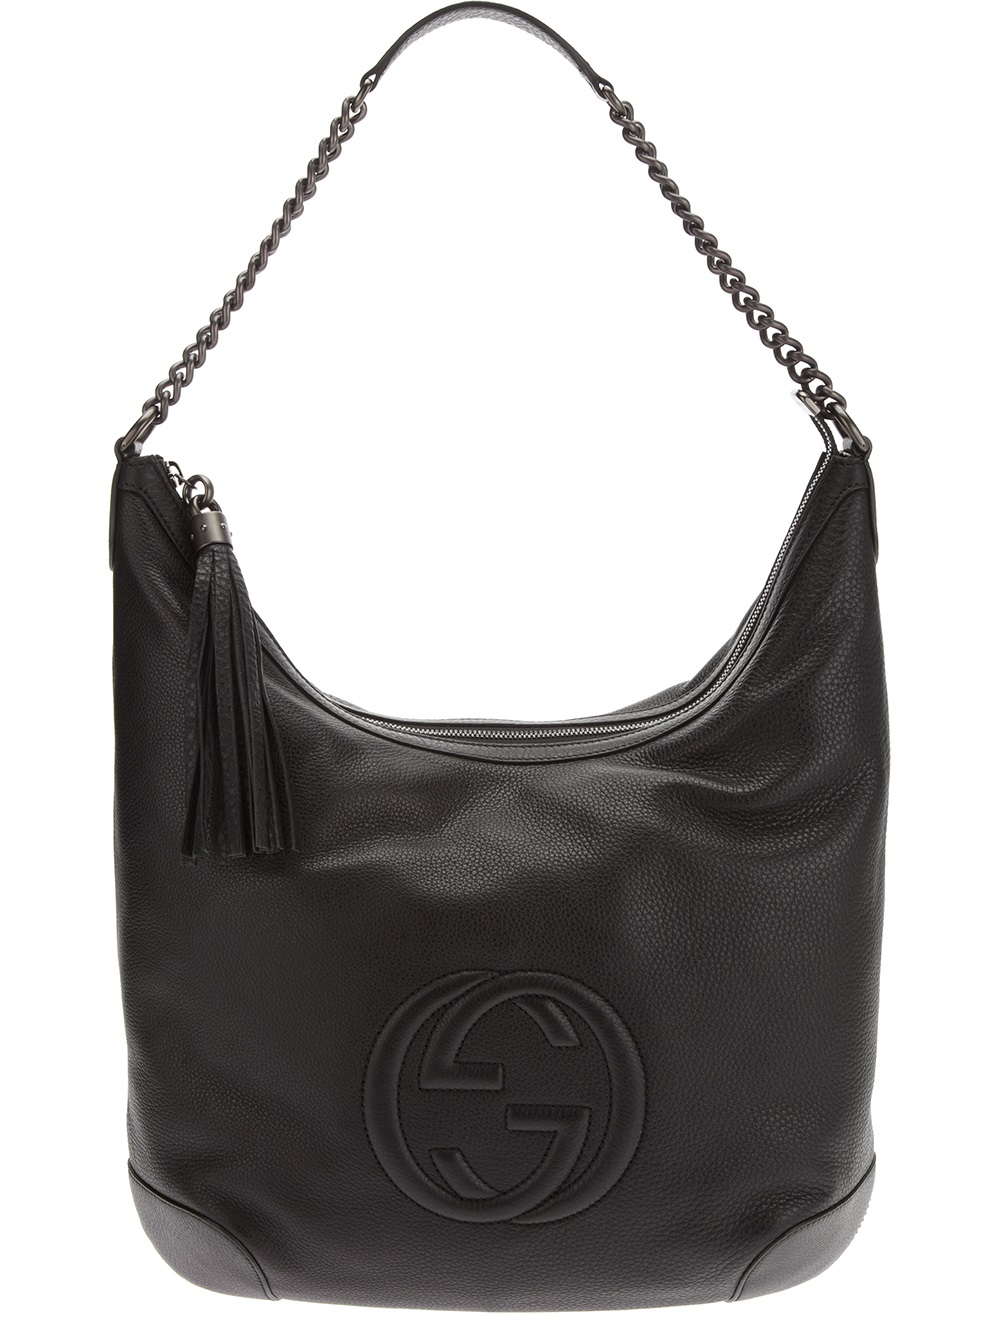 Gucci Soho Disco Leather Bag | Best Everyday Bags ...